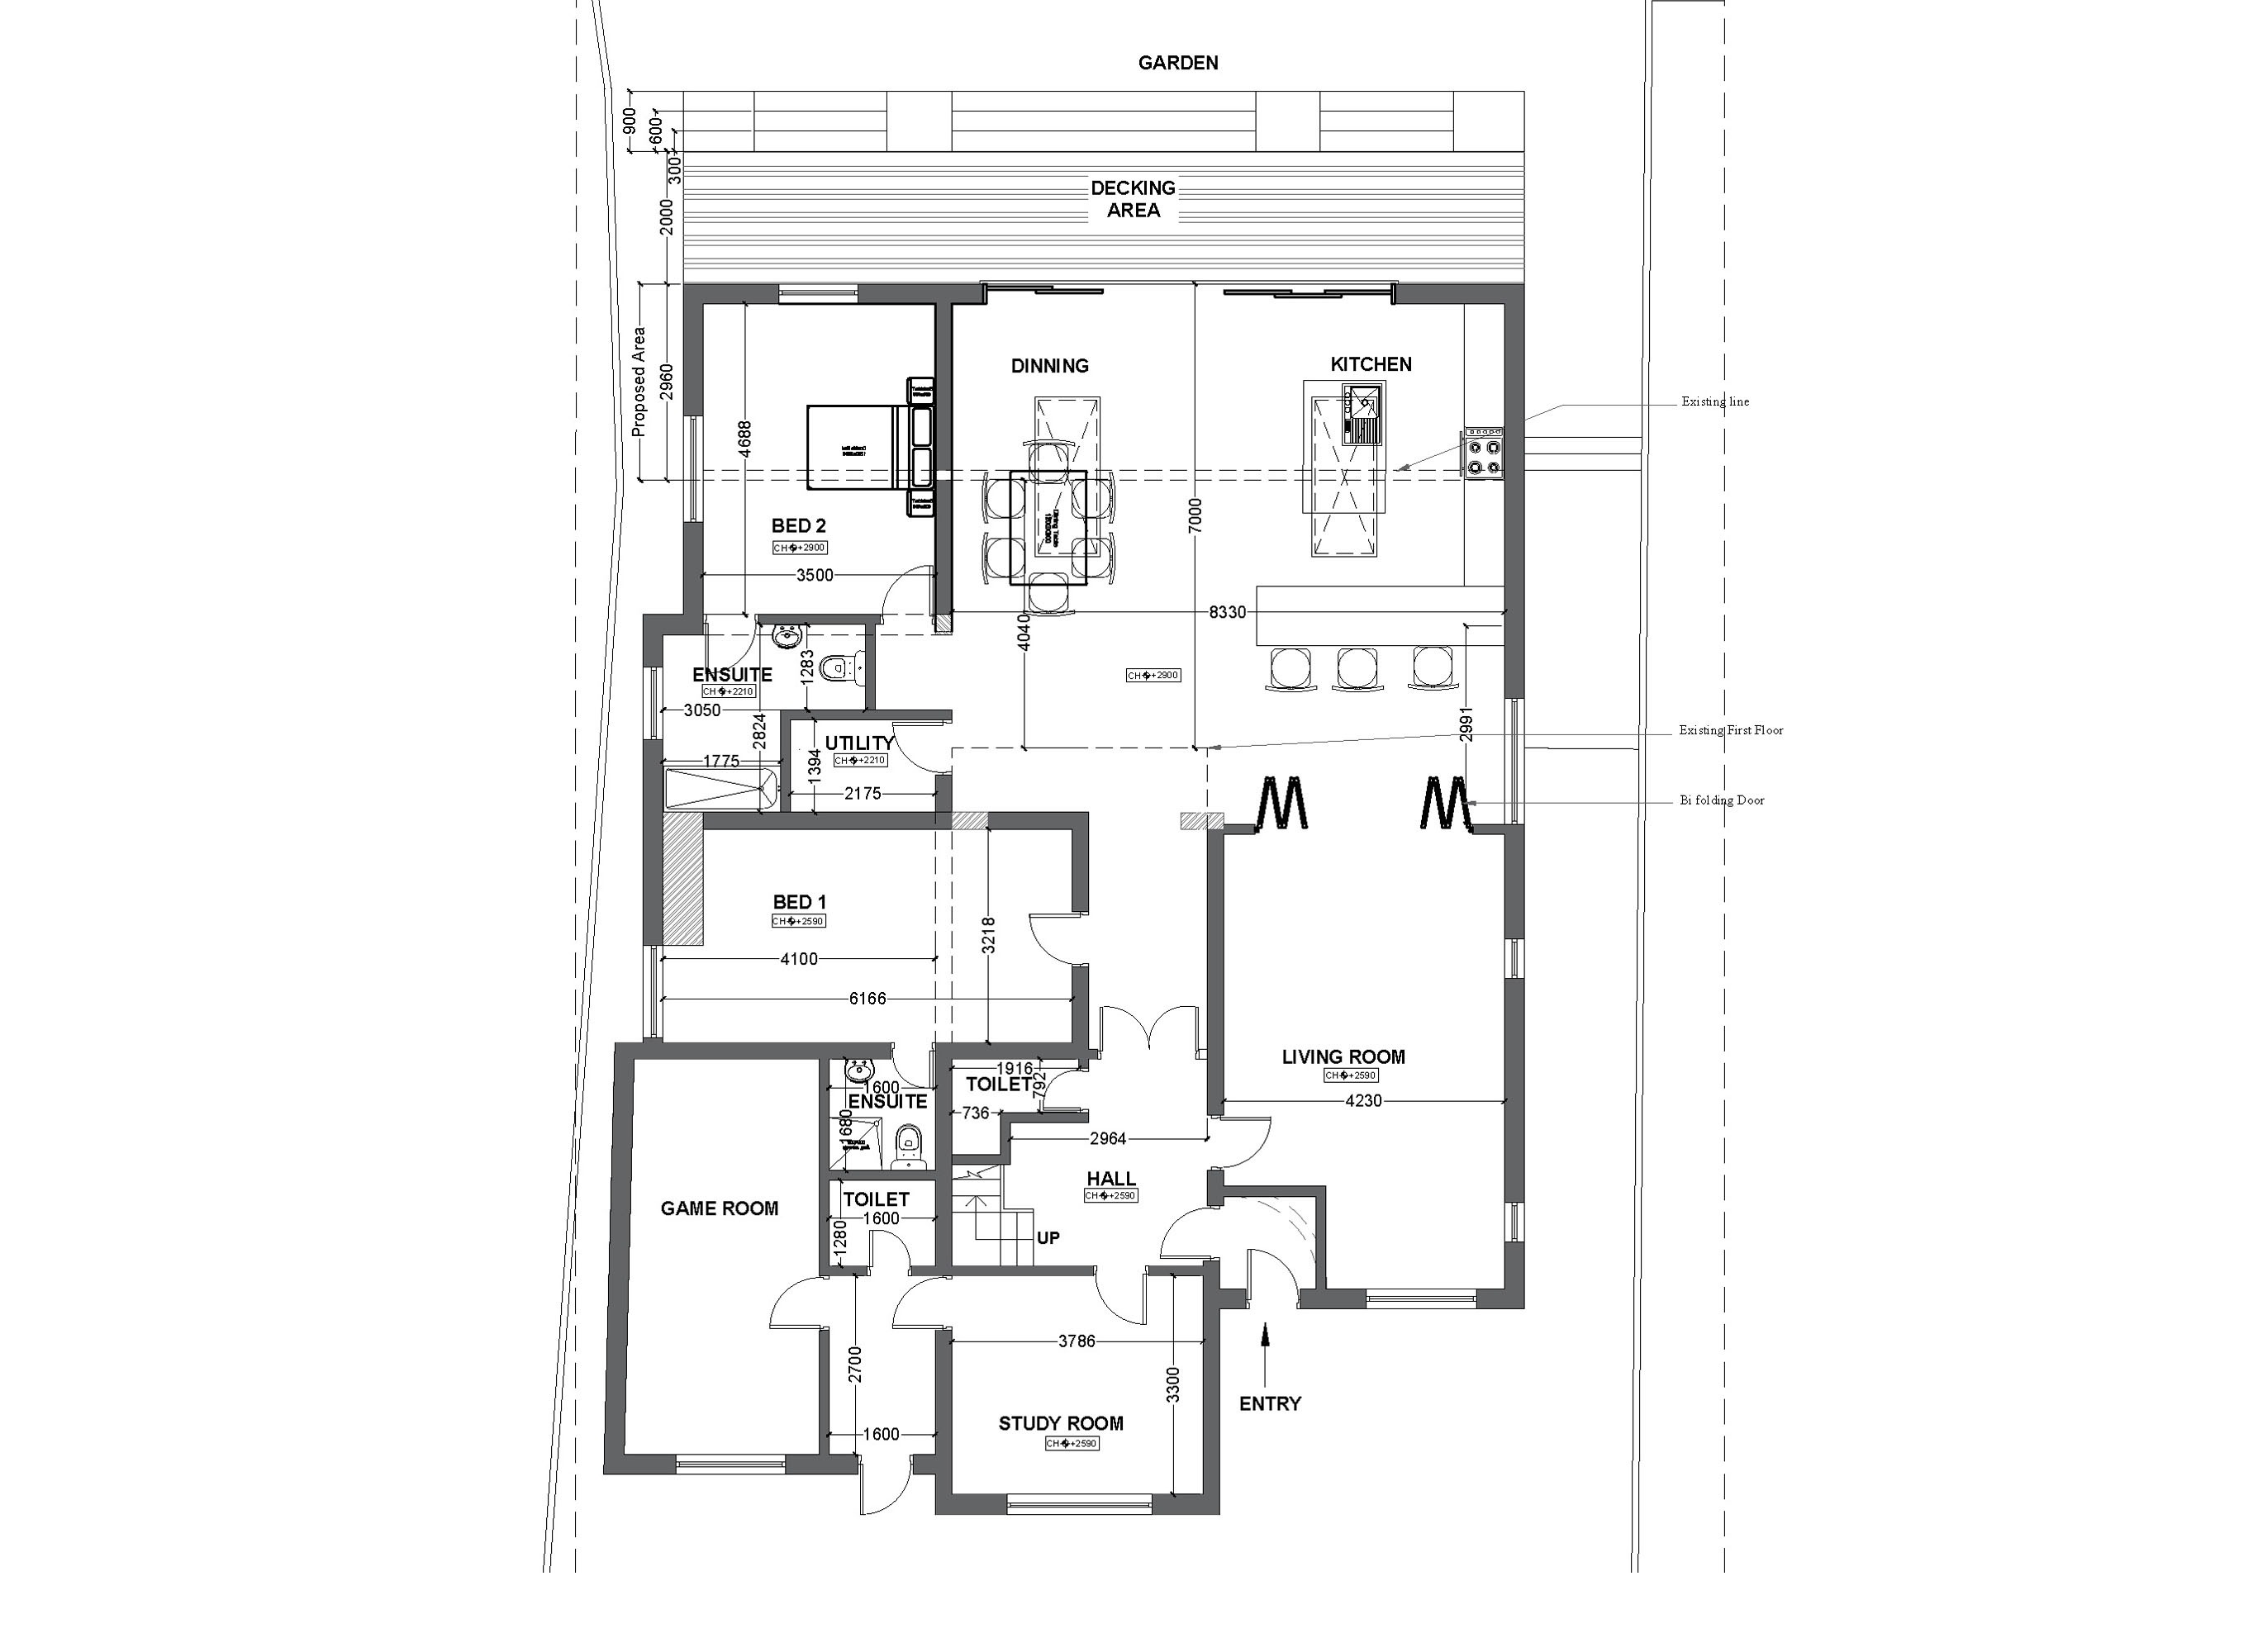 9 proposed G floor plan